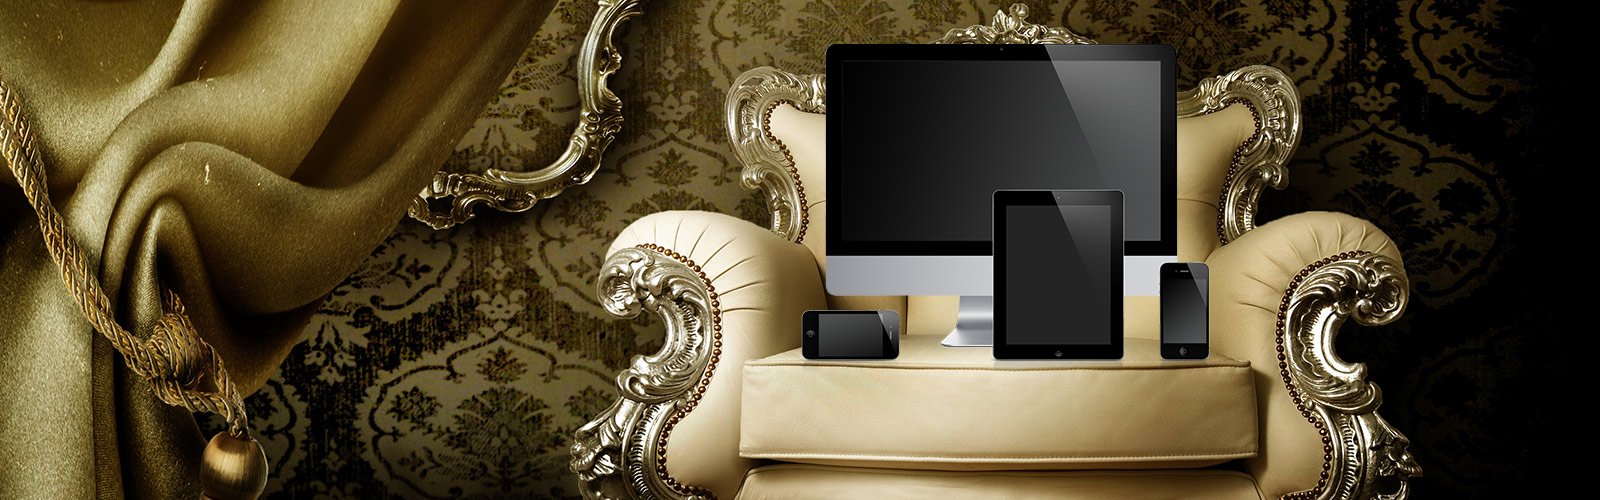 luxury-Internet-seat-1600x500